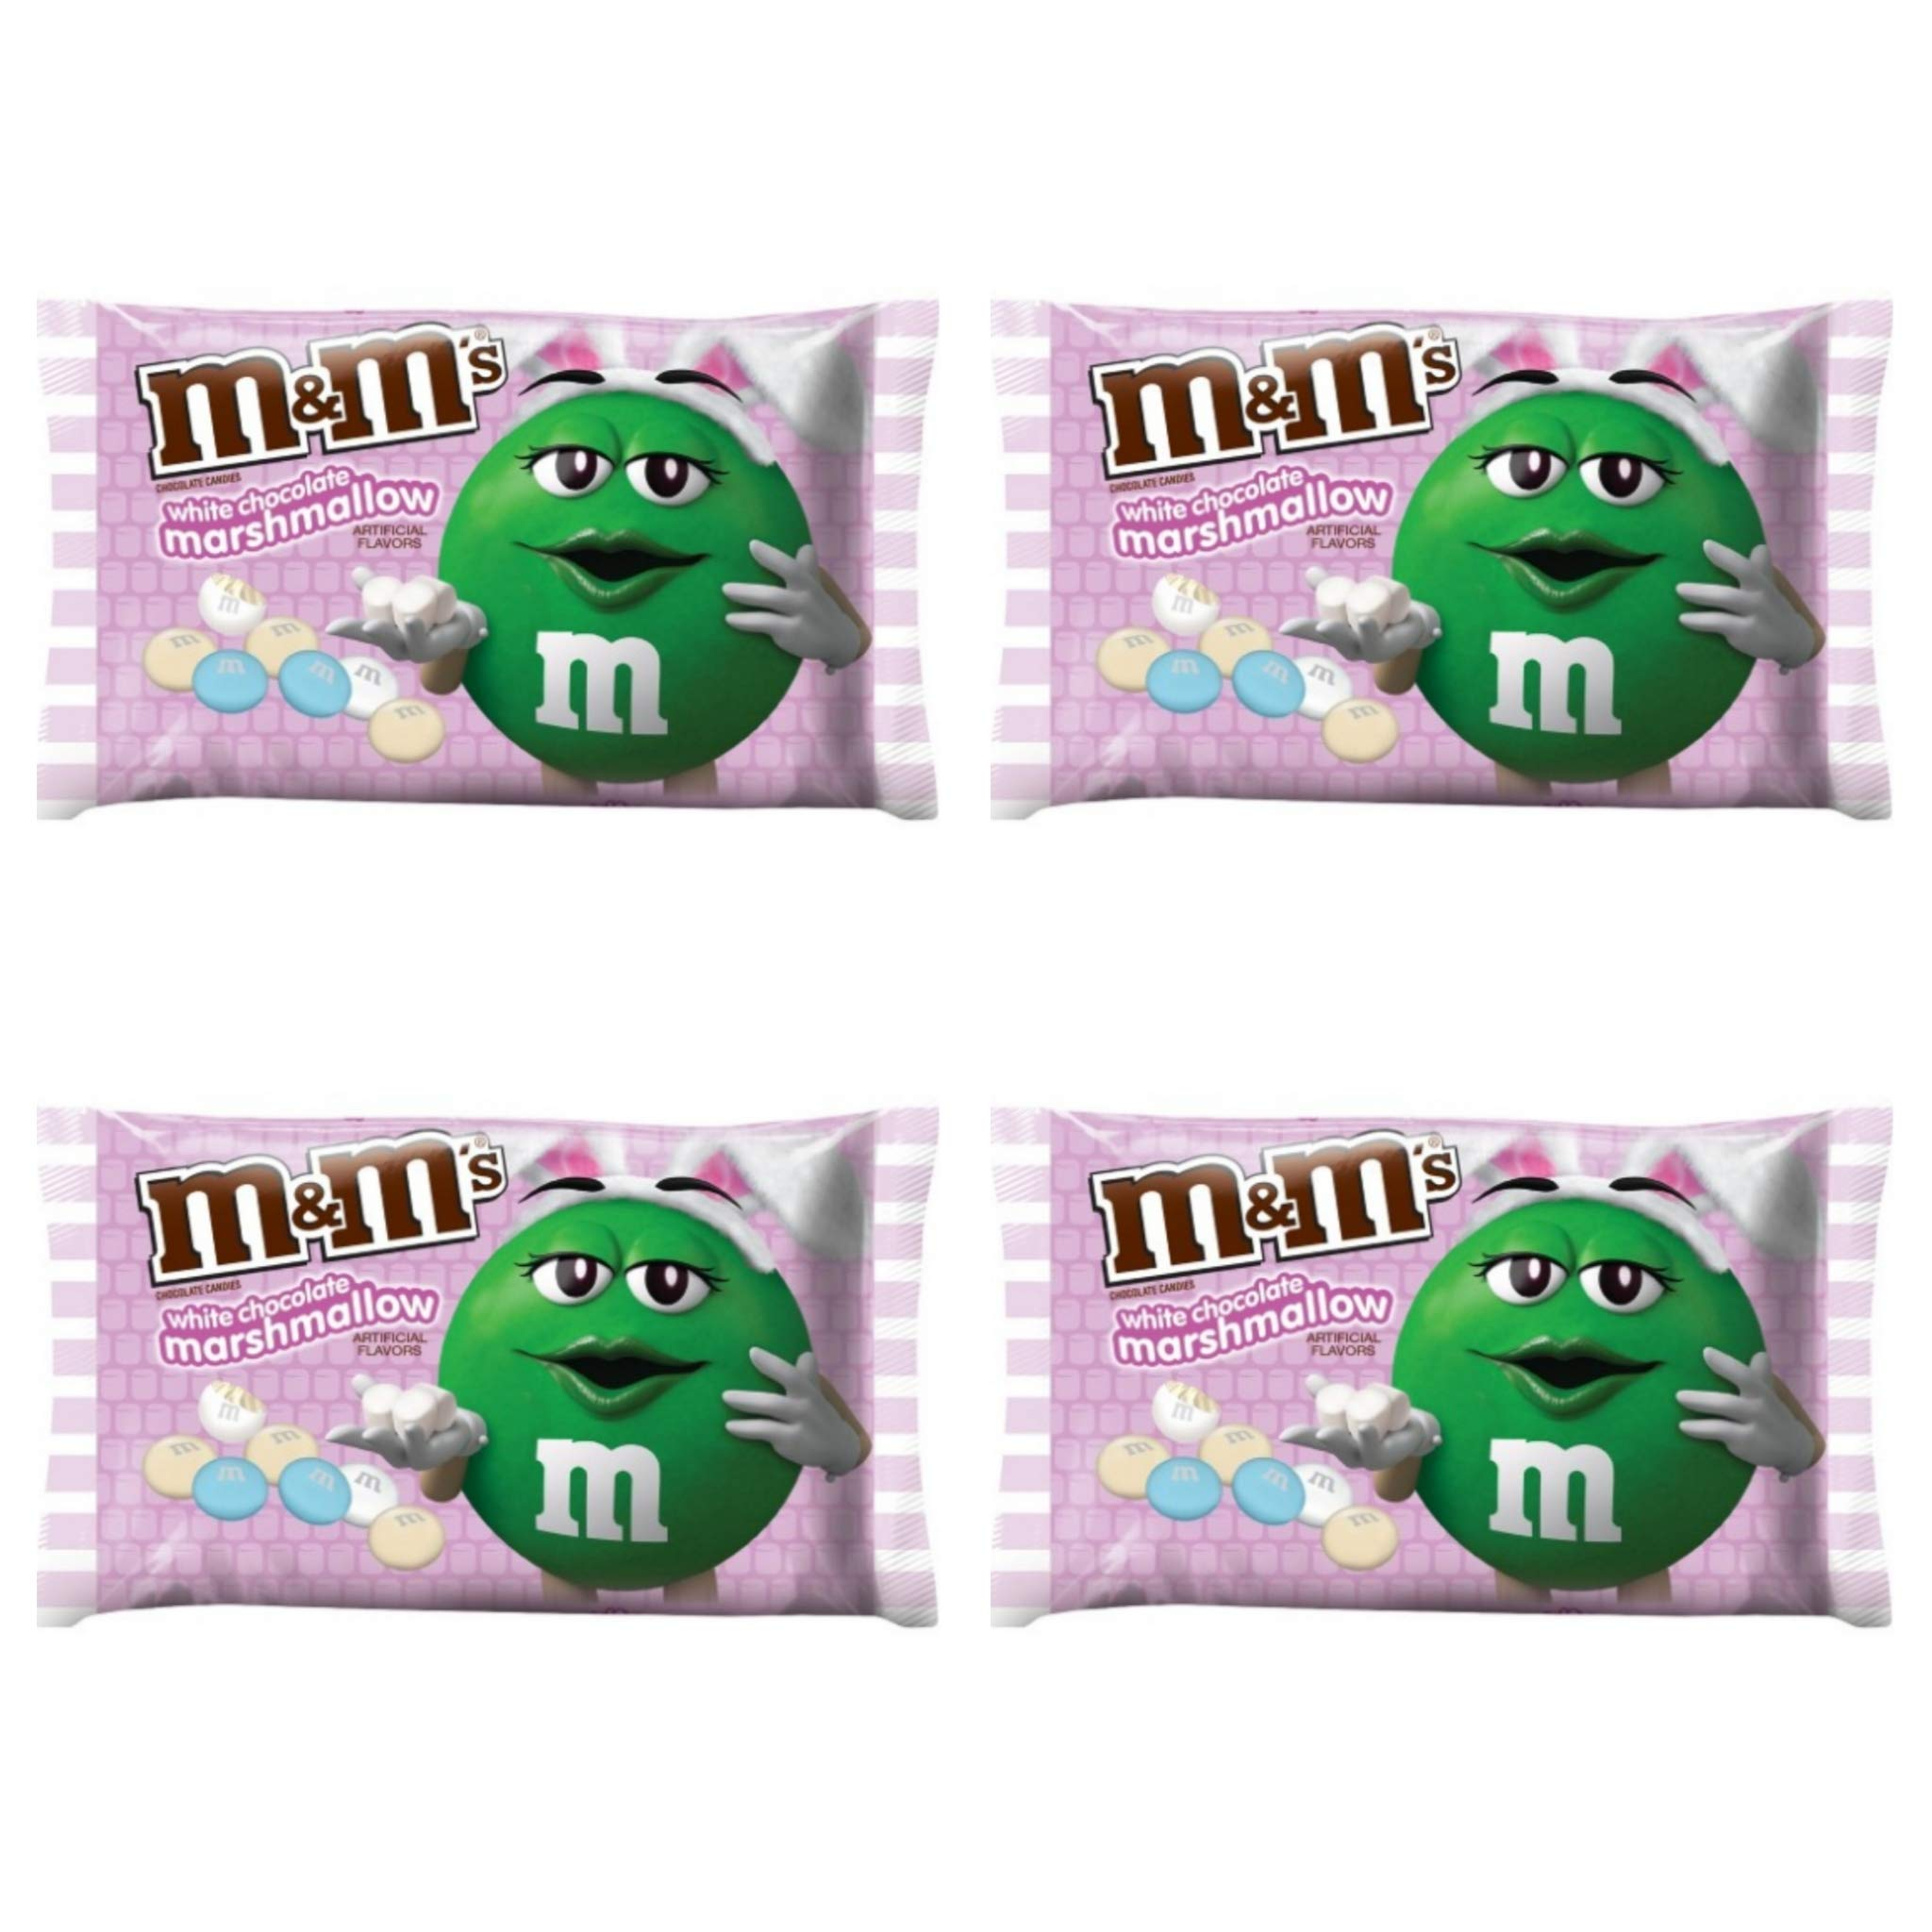 M&Ms White Chocolate Marshmallow Easter Candy - Pack of 4 Bags - 8 oz per Bag